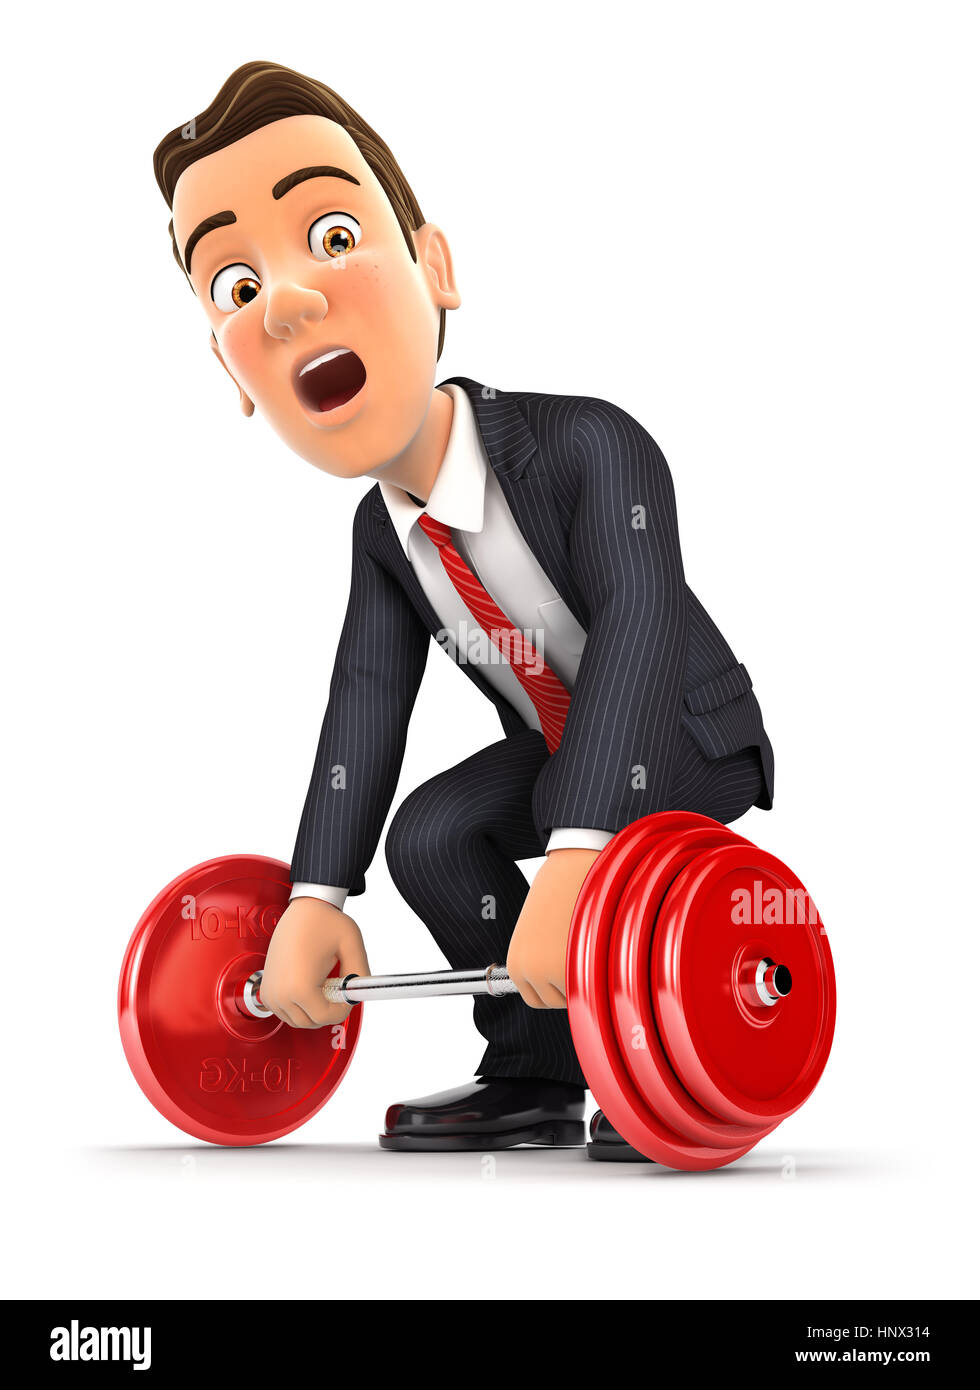 3d businessman trying to lift heavy weight, illustration with isolated white background Stock Photo